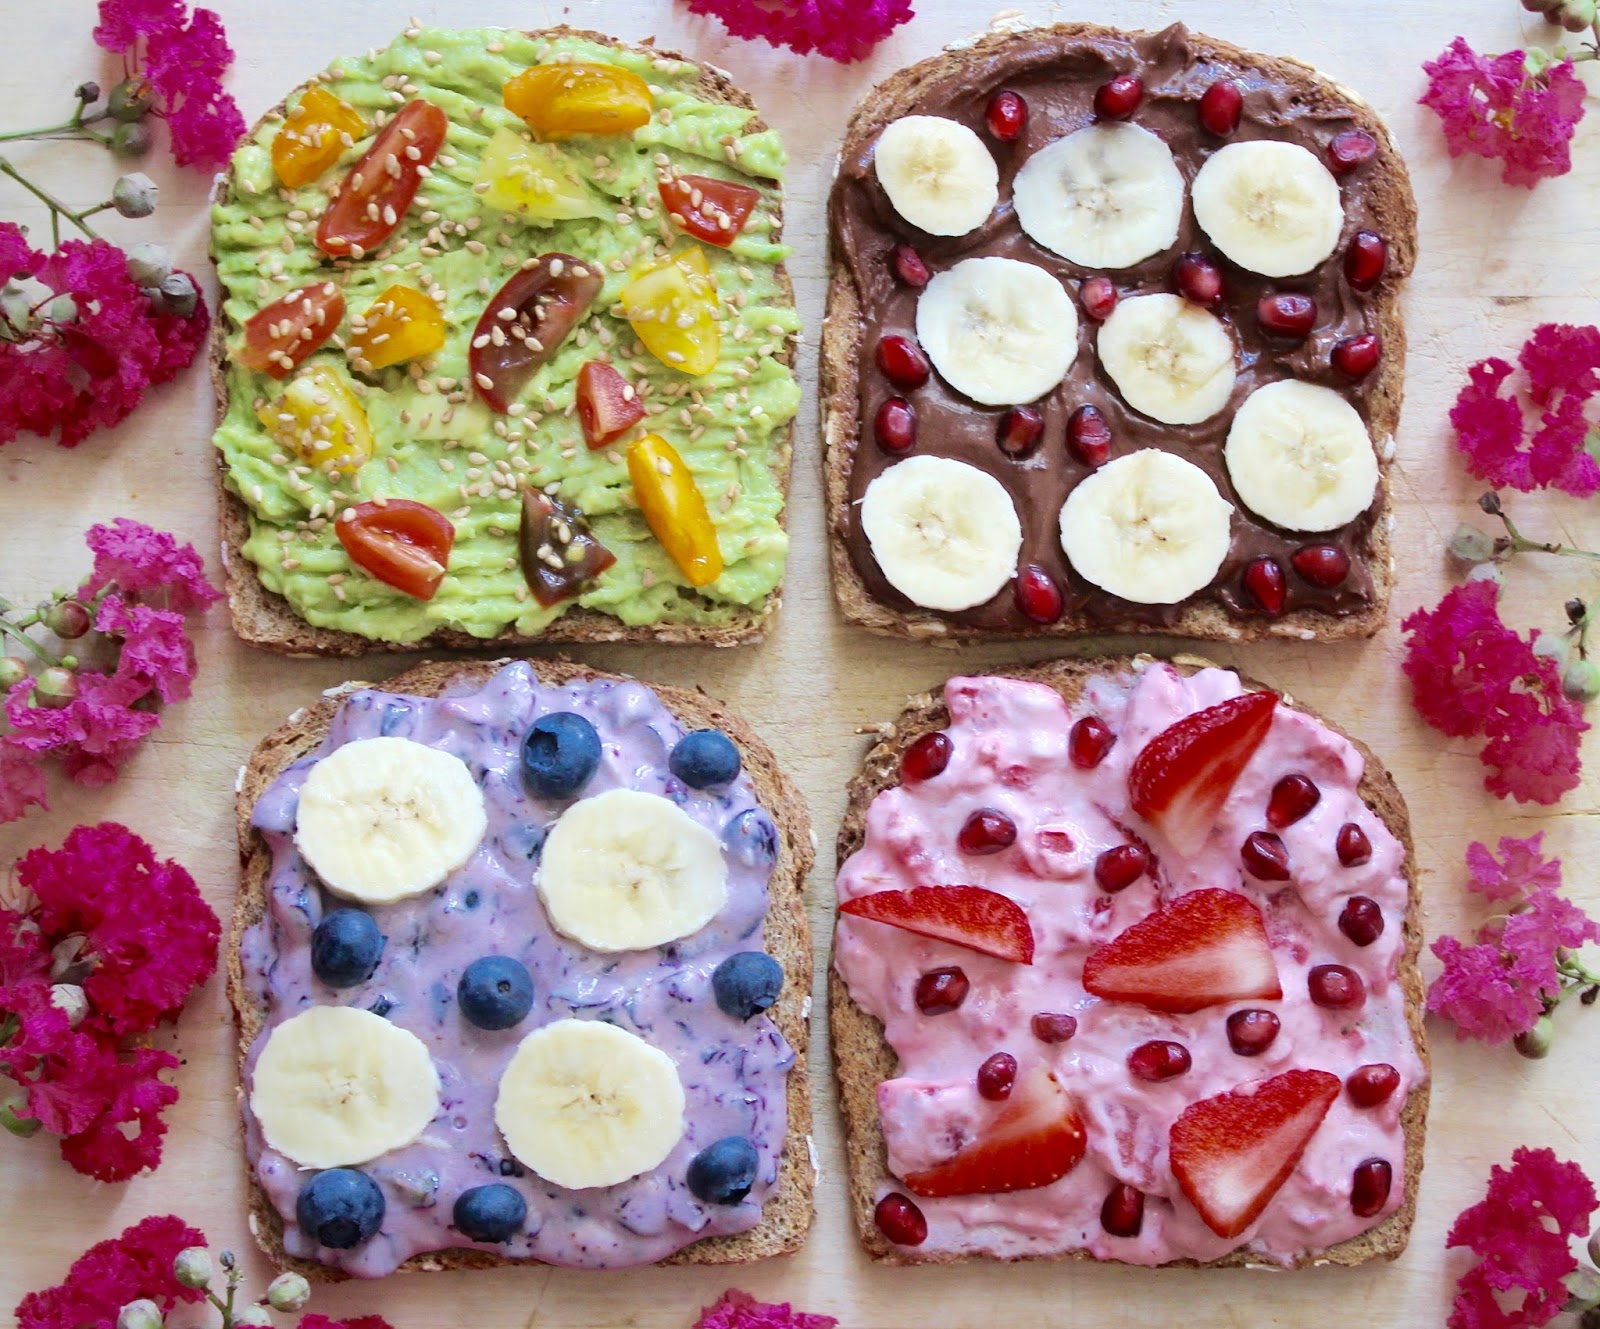 FRESH VEGAN TOAST 4 WAYS